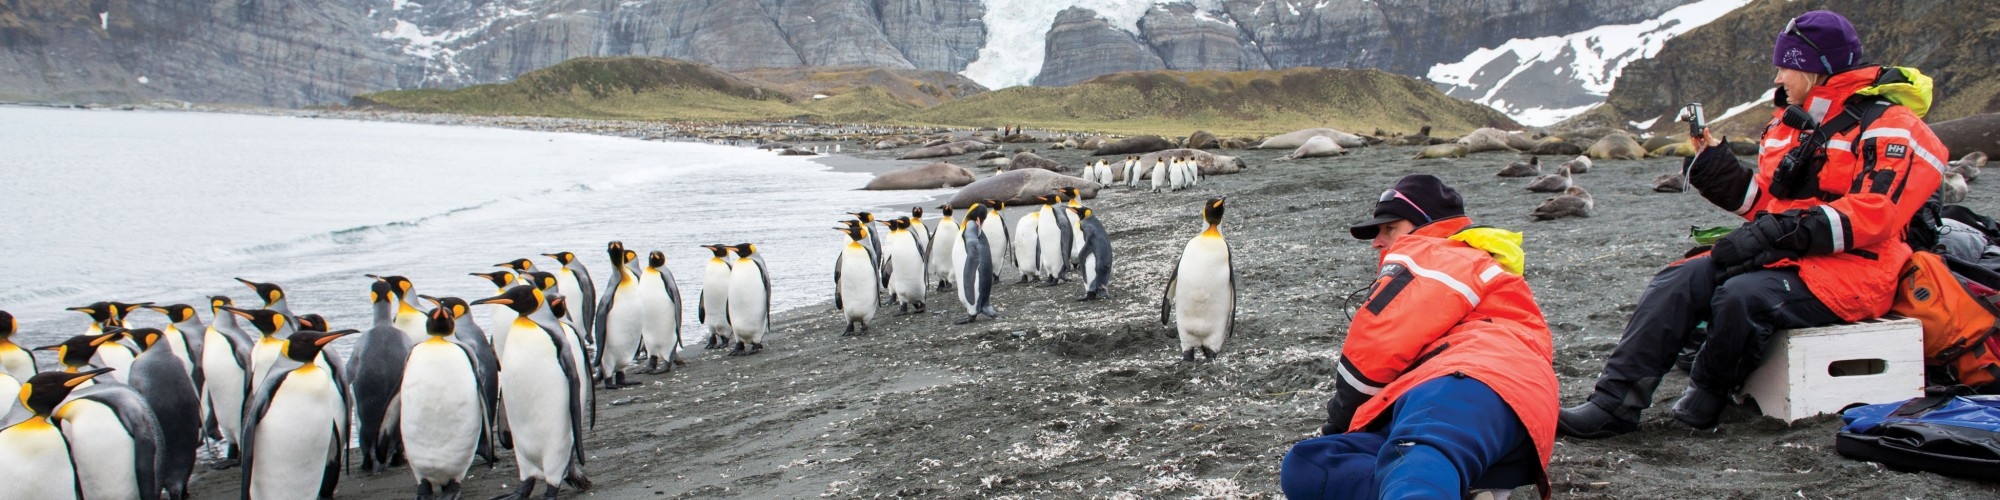 AN - South Georgia - Hebridean Sky - King penguins on beach with persons